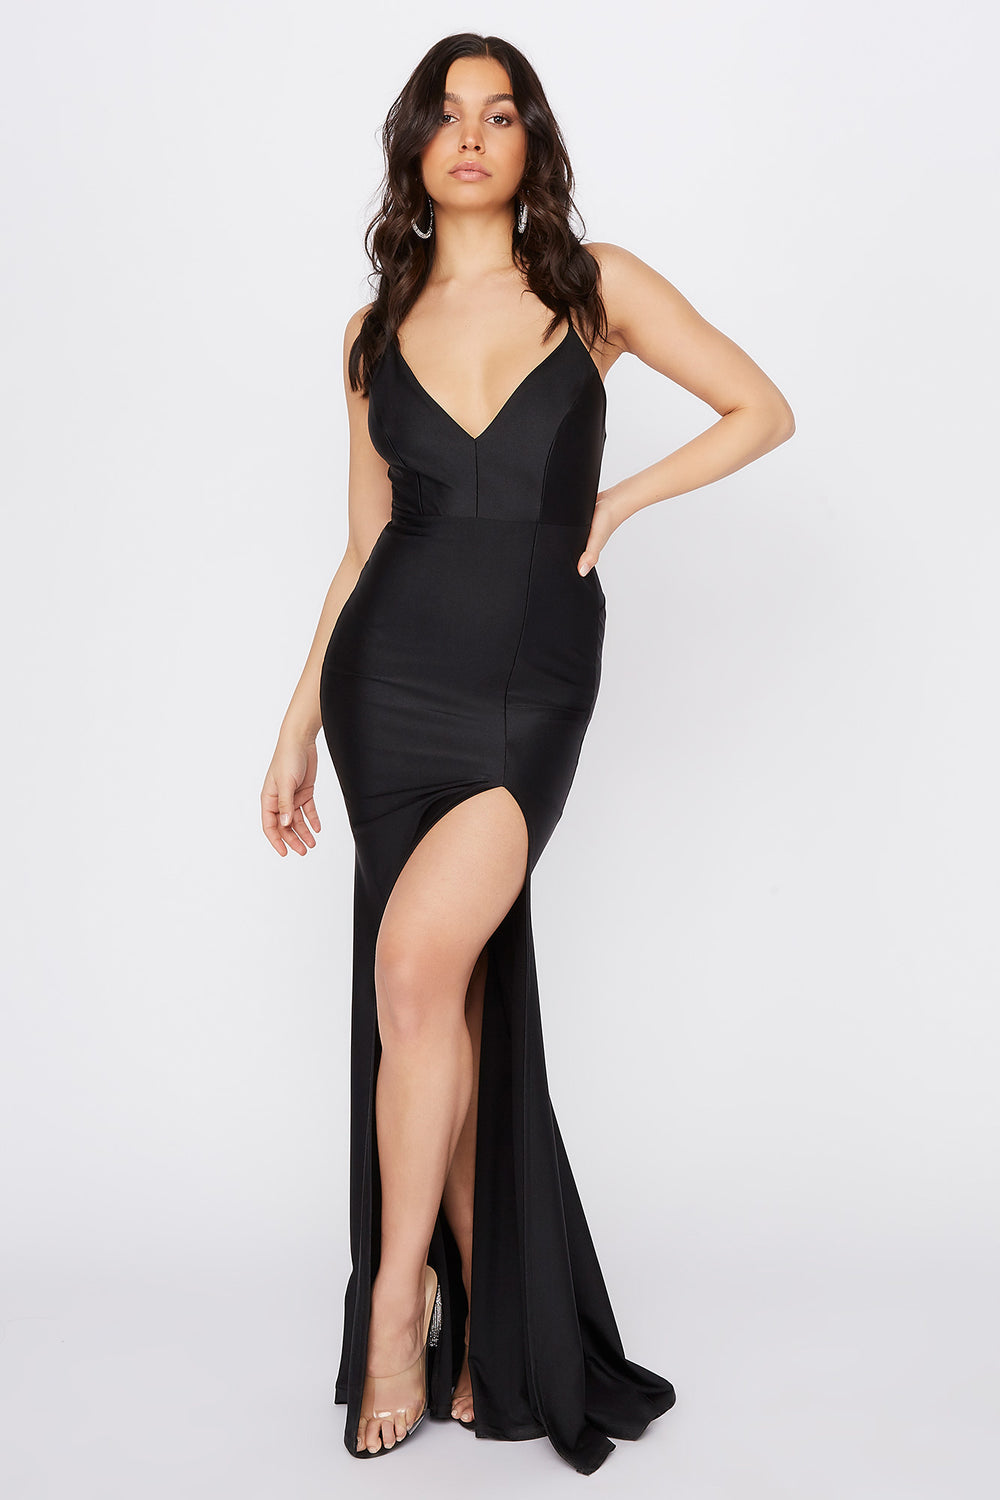 Crystal V-Neck Slit Maxi Dress Black